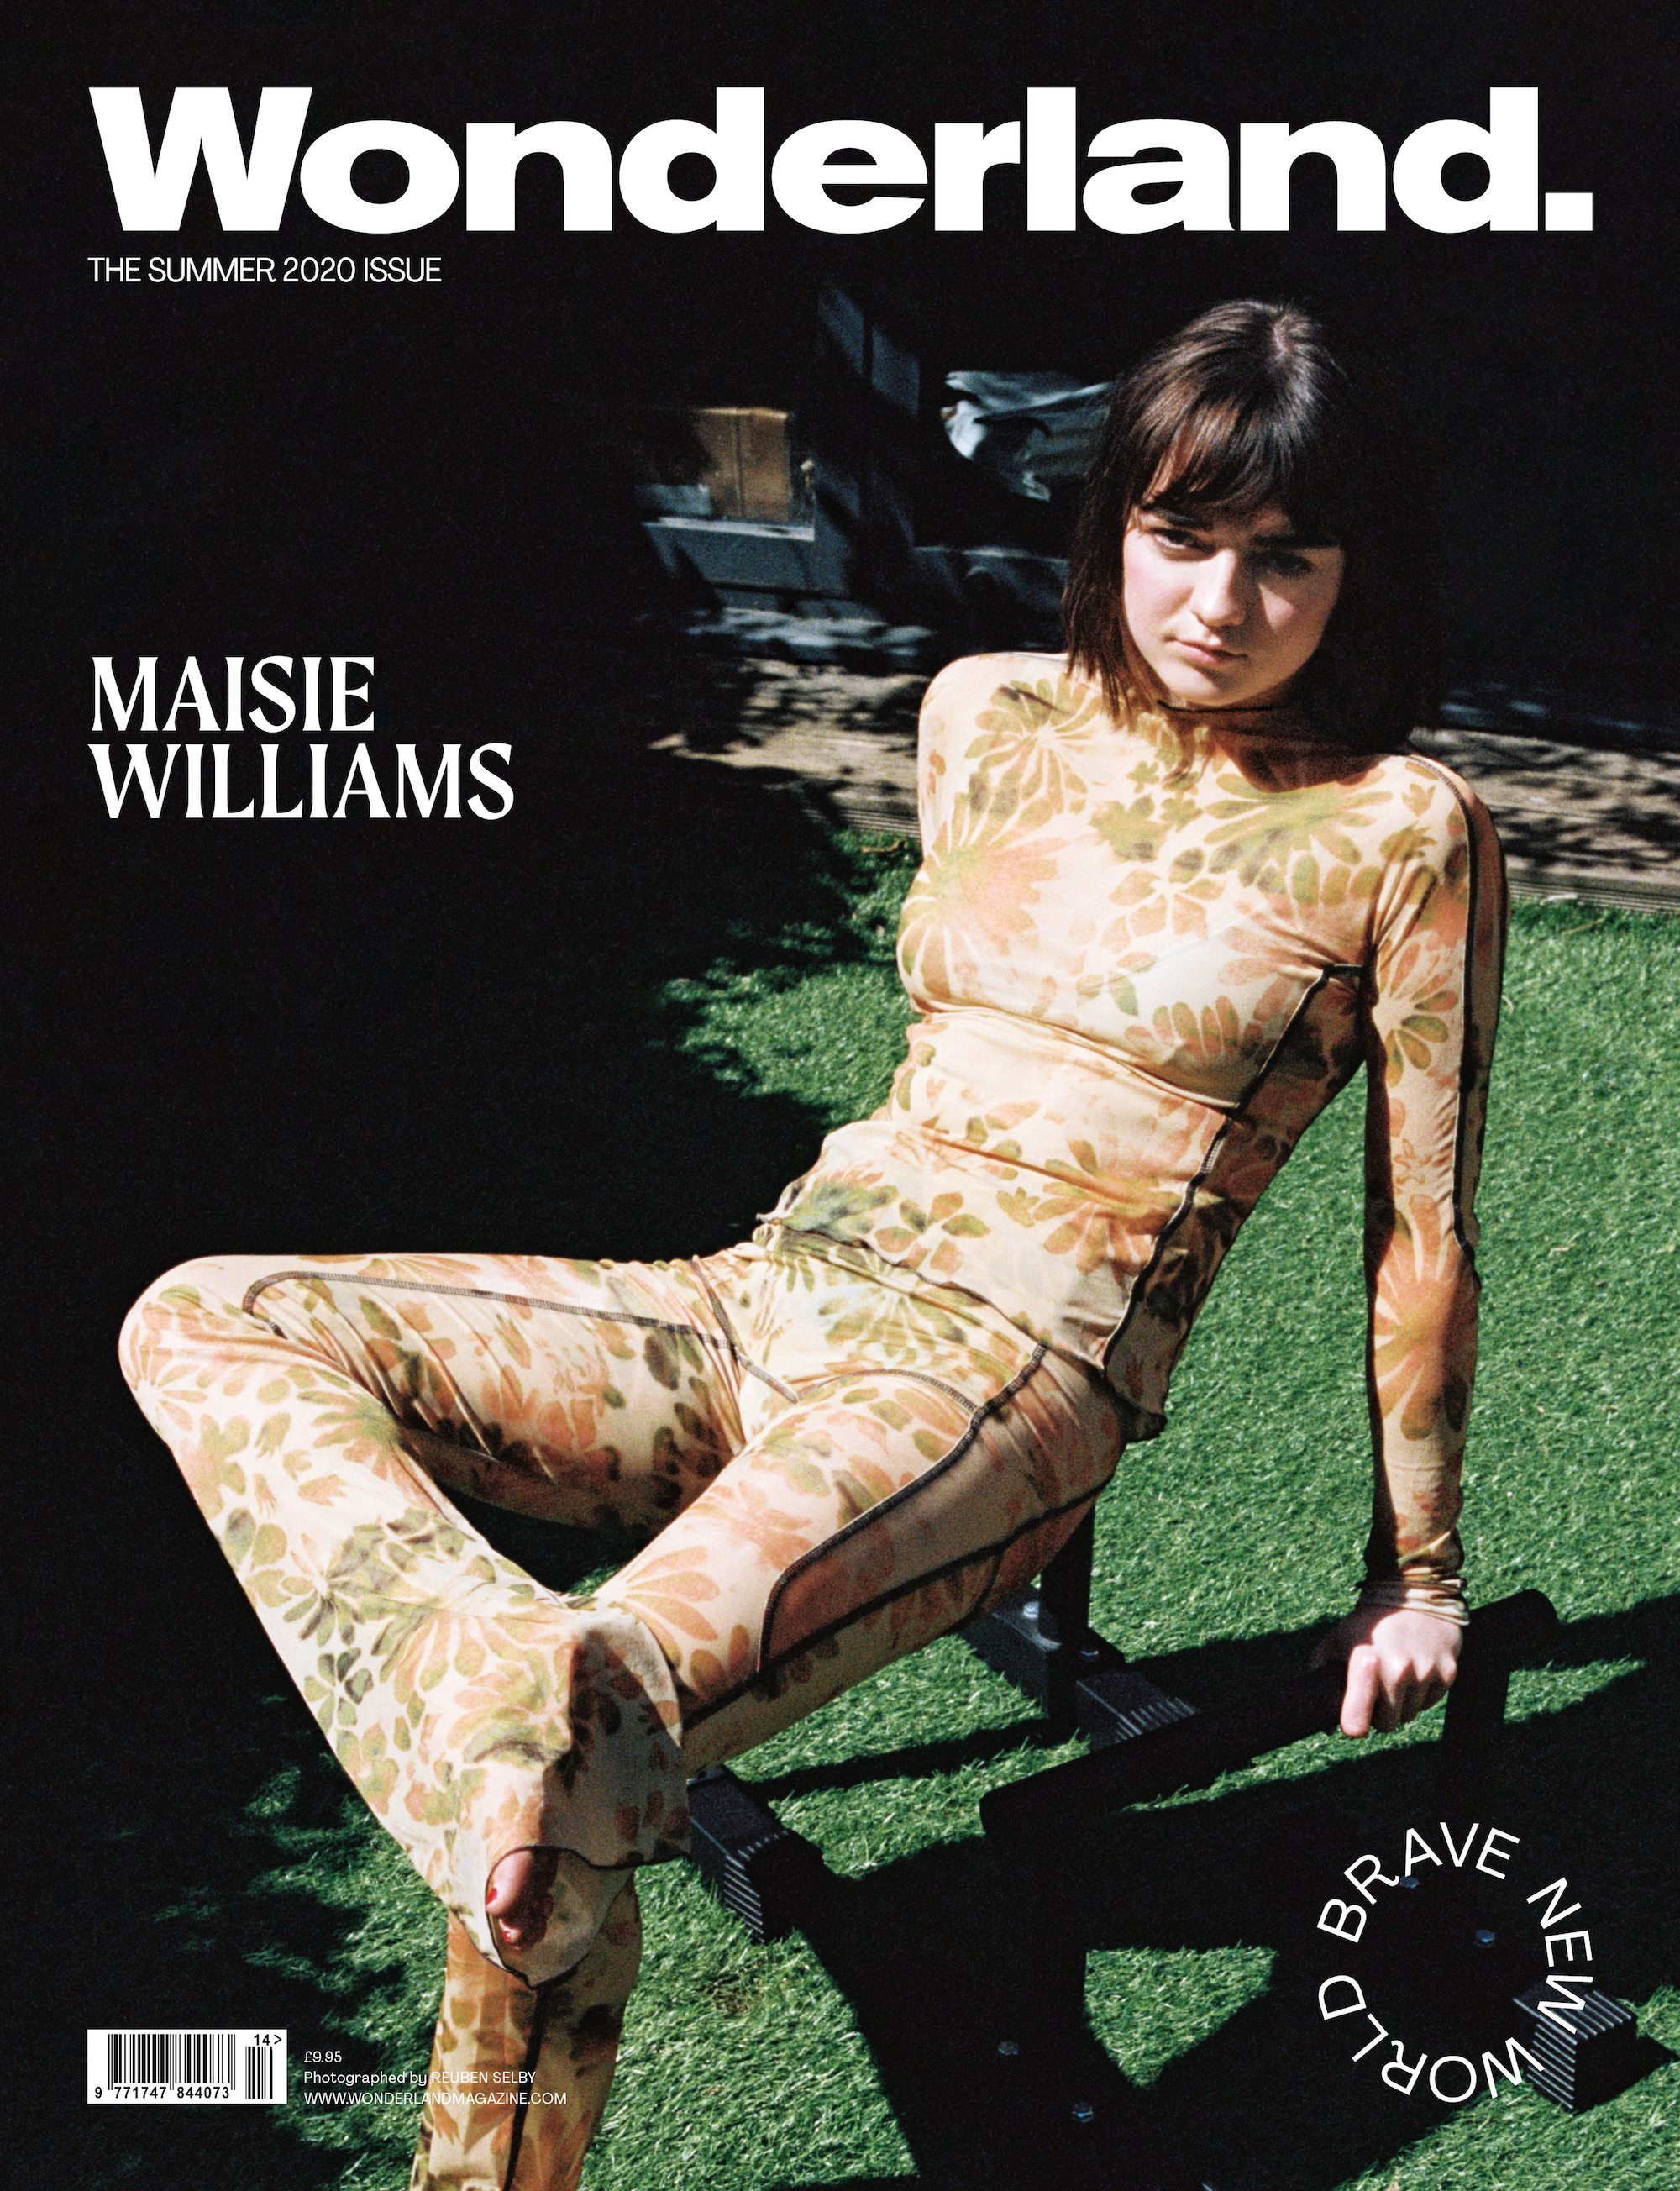 Maisie Wiliams covers the Summer 2020 issue of Wonderland